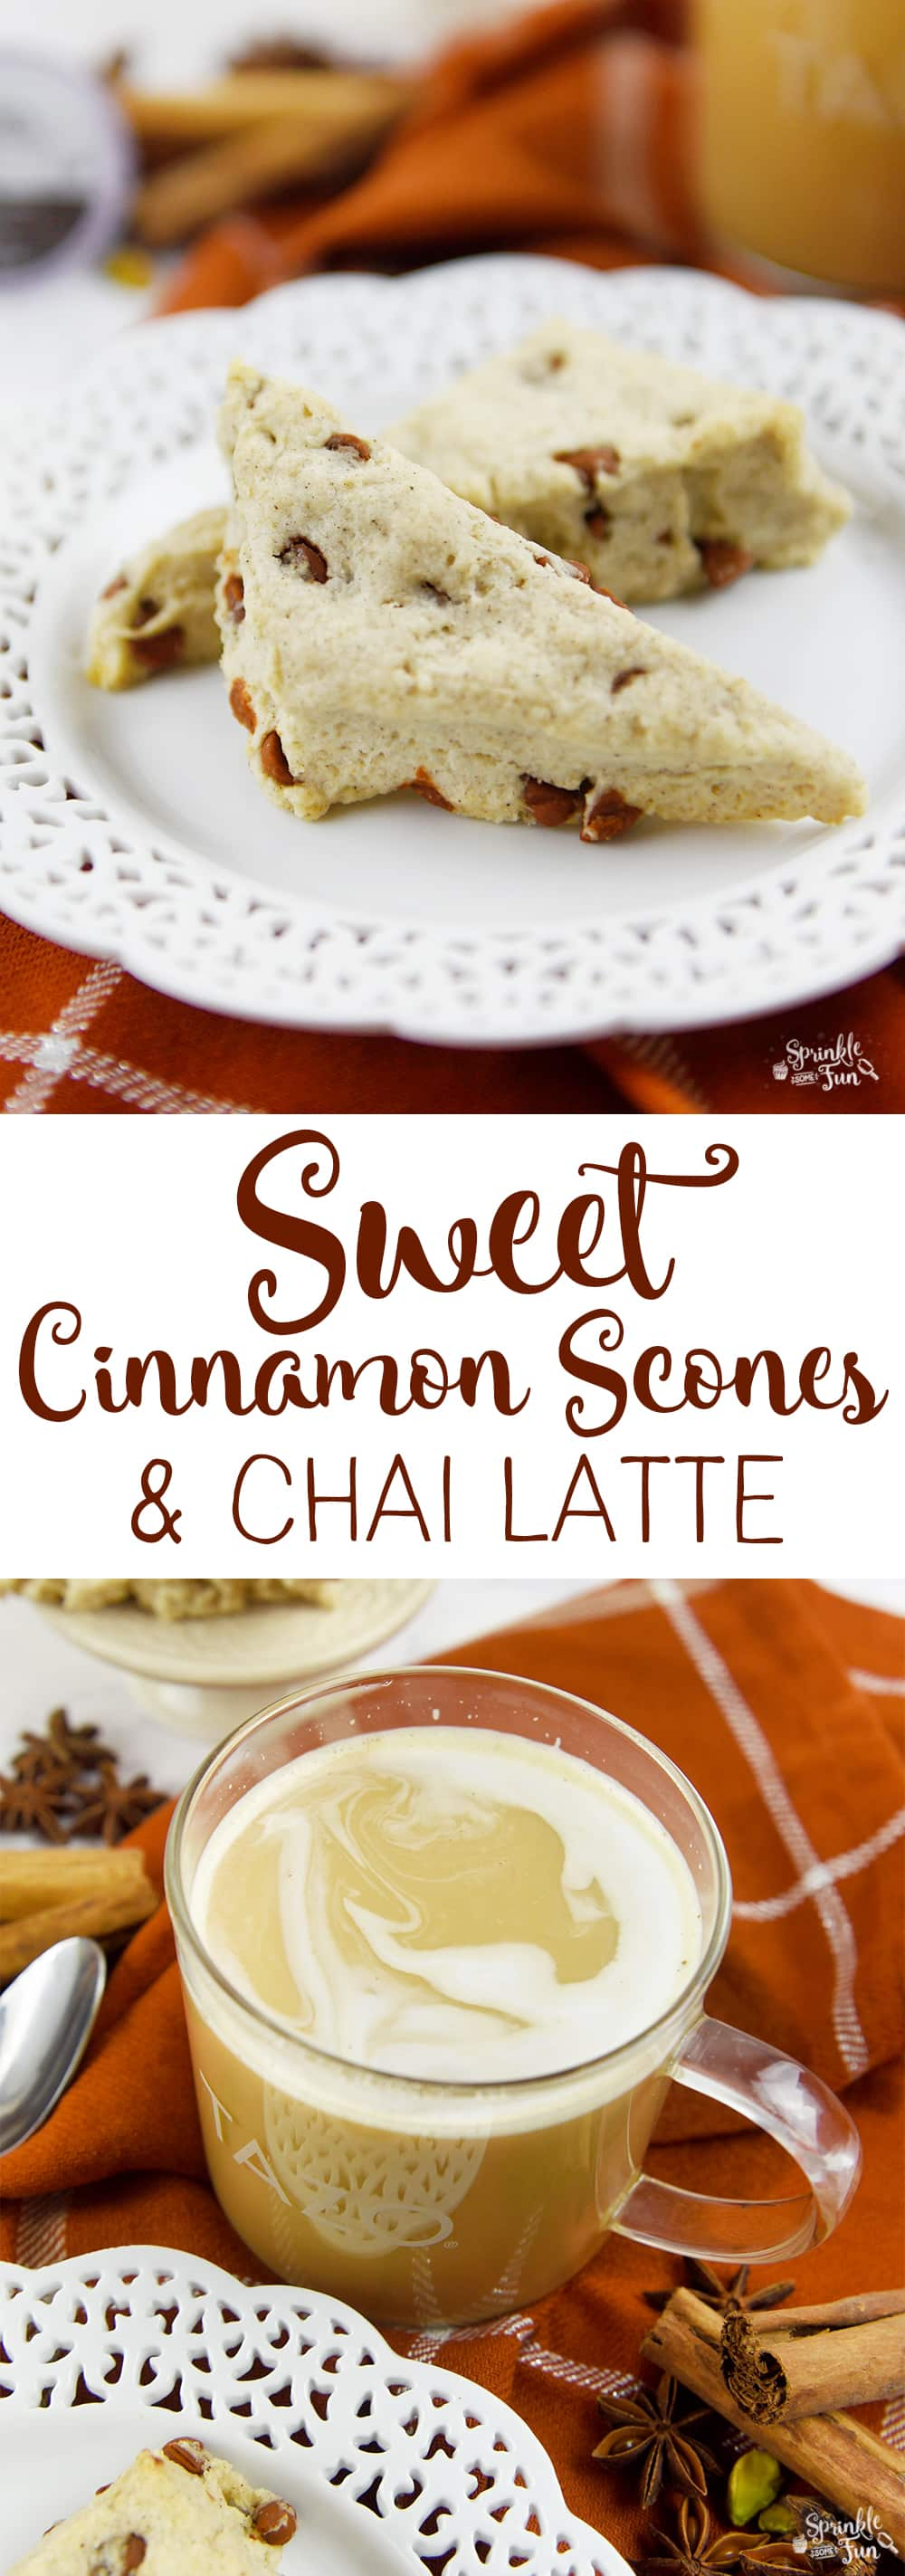 These sweet cinnamon scones are sweet and spicy just like the rich flavors that are in chai tea.  The cinnamon chips add an additional touch of flavor for these delicious scones.